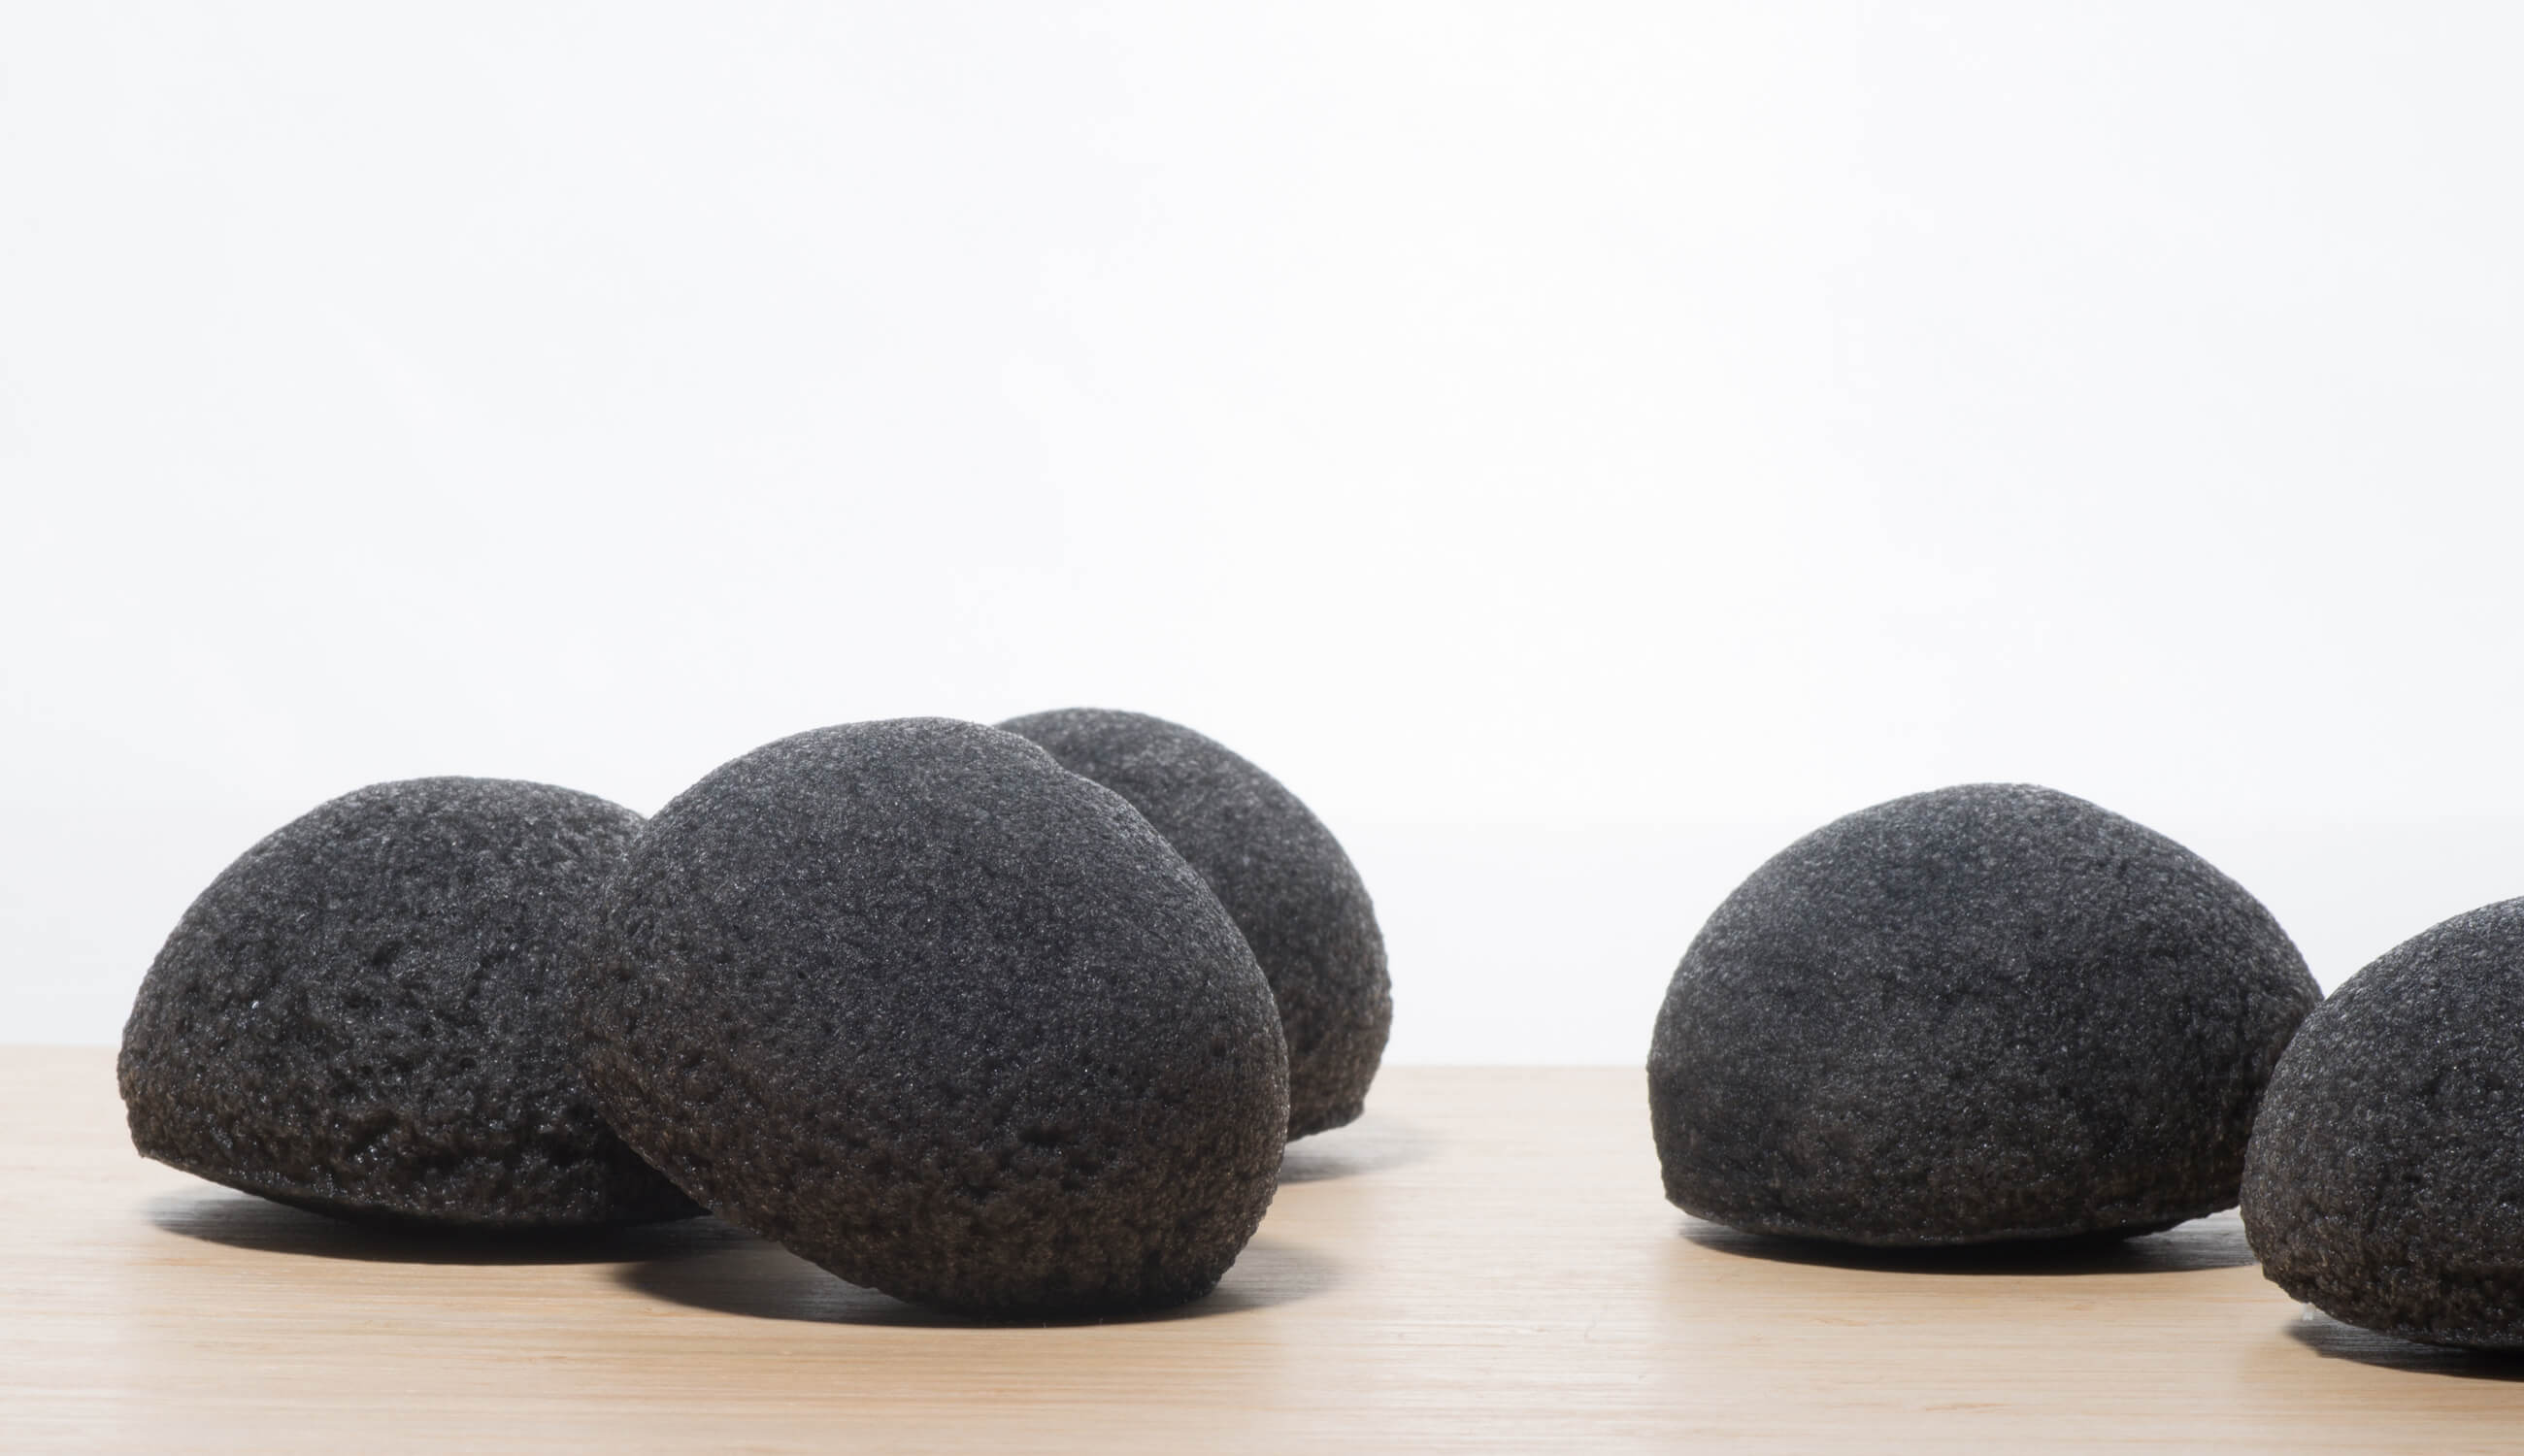 100% PURE Konjac sponges